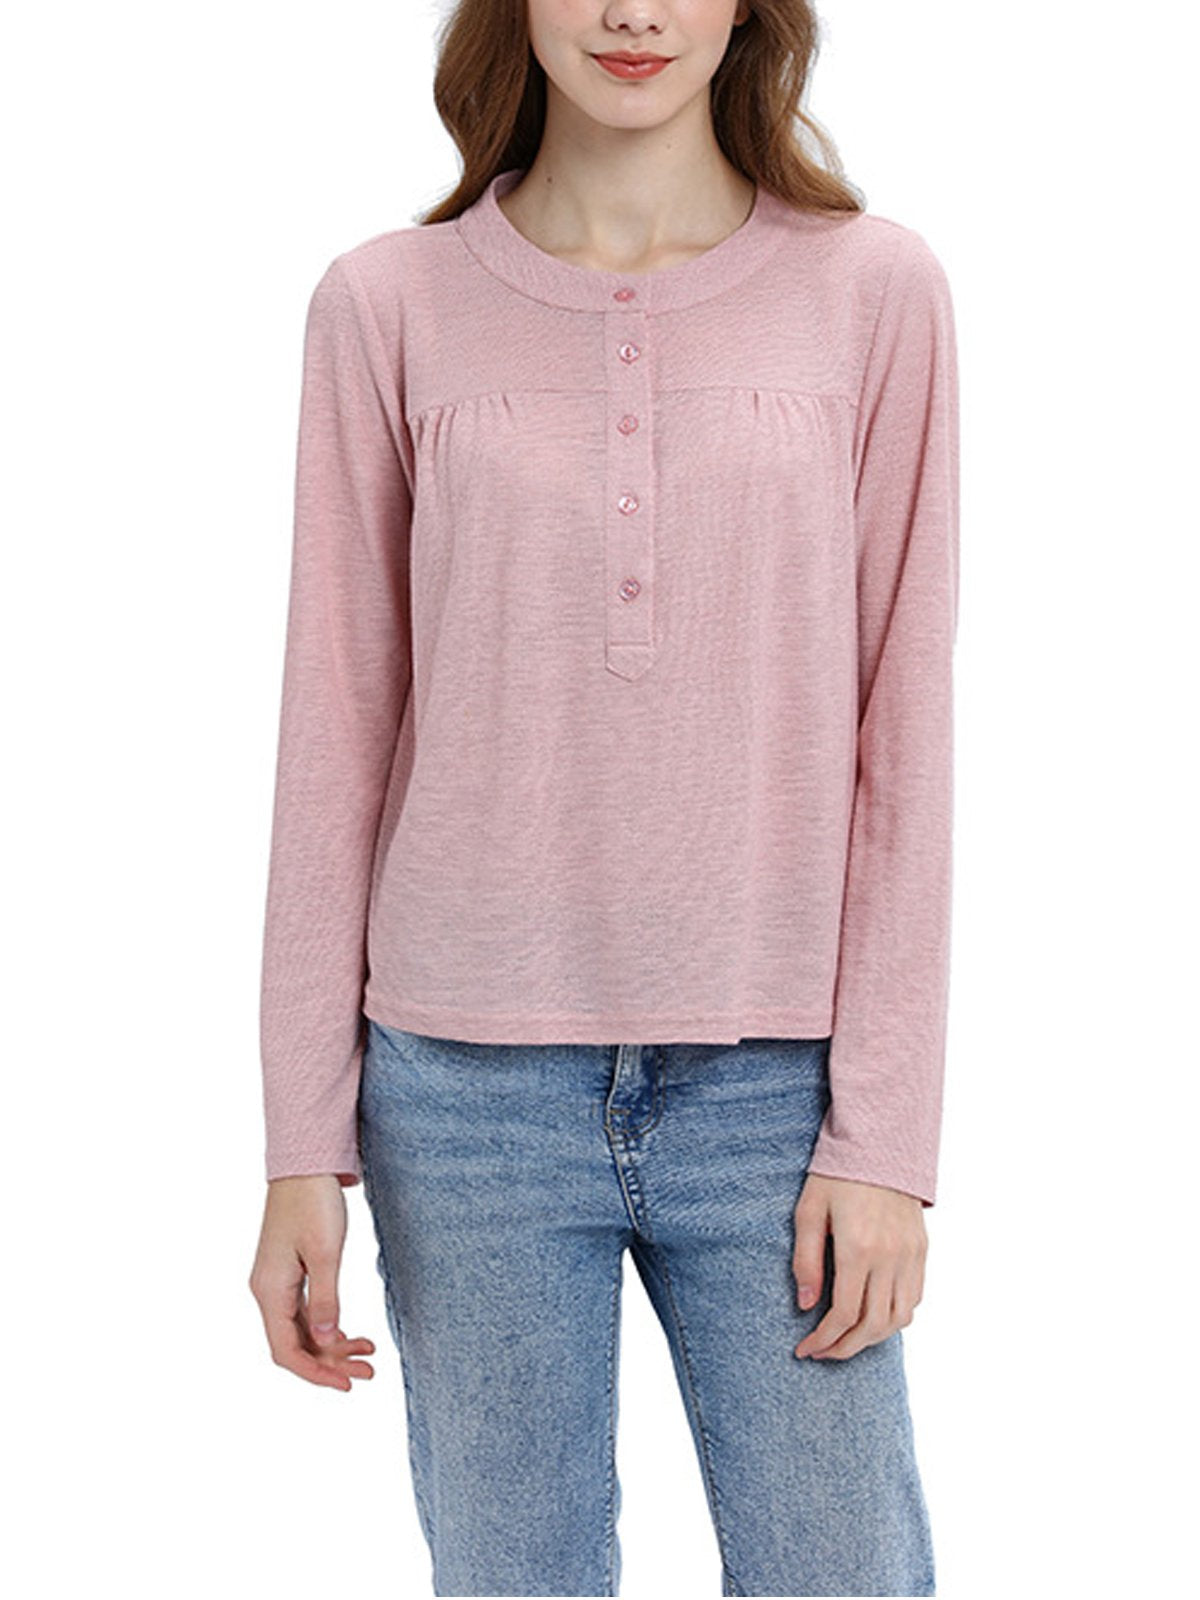 Cotton Long Sleeve Shirts & Tops